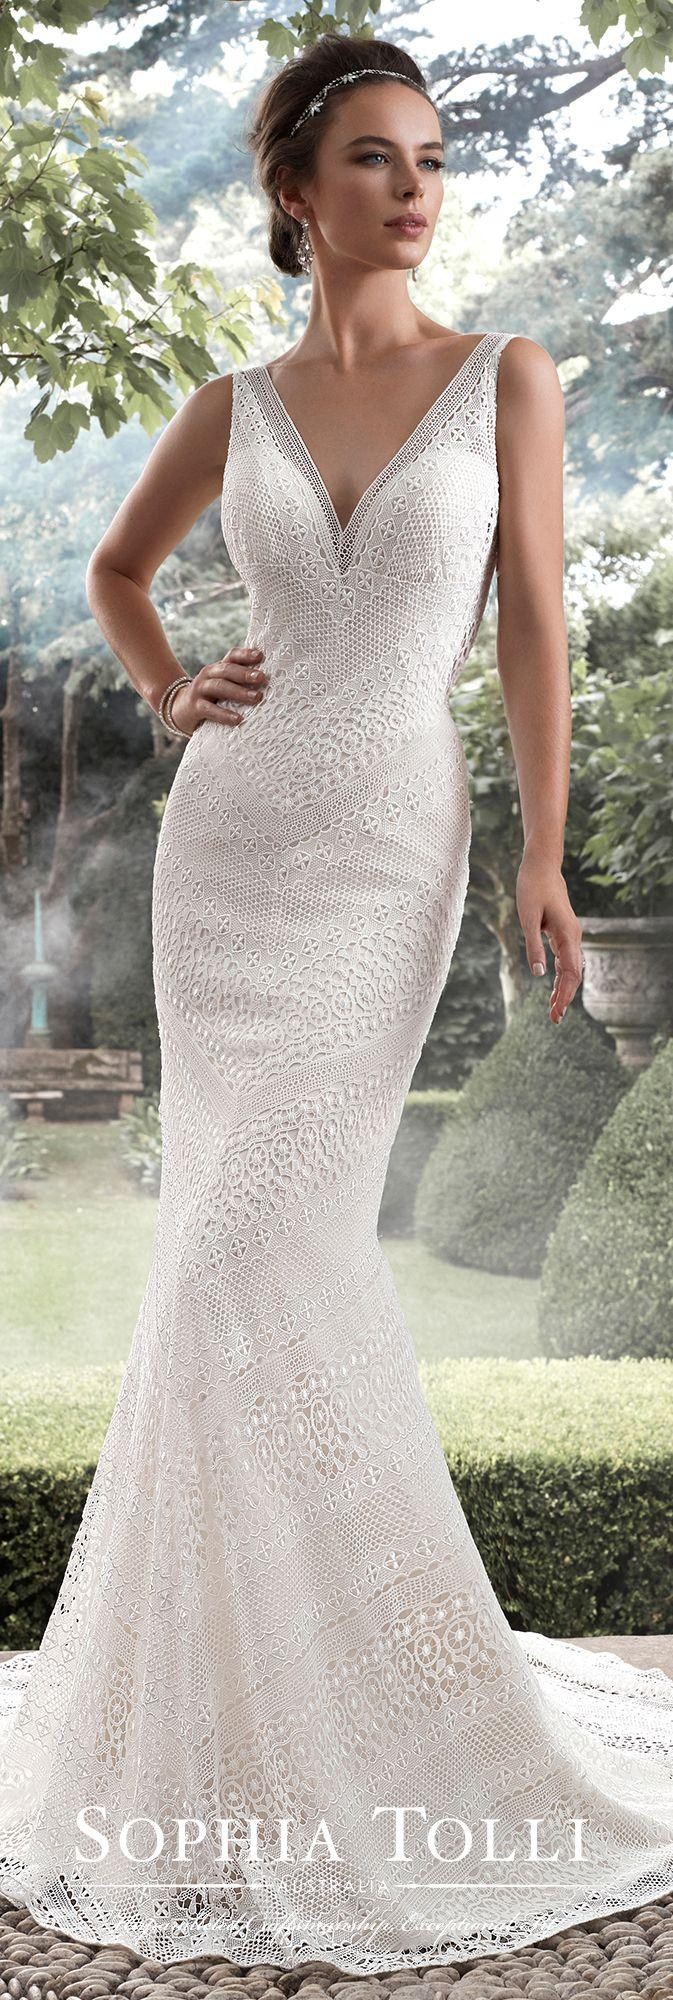 Mariage - Allover Lace V-neck Fit And Flare Wedding Dress - Sophia Tolli Y21742